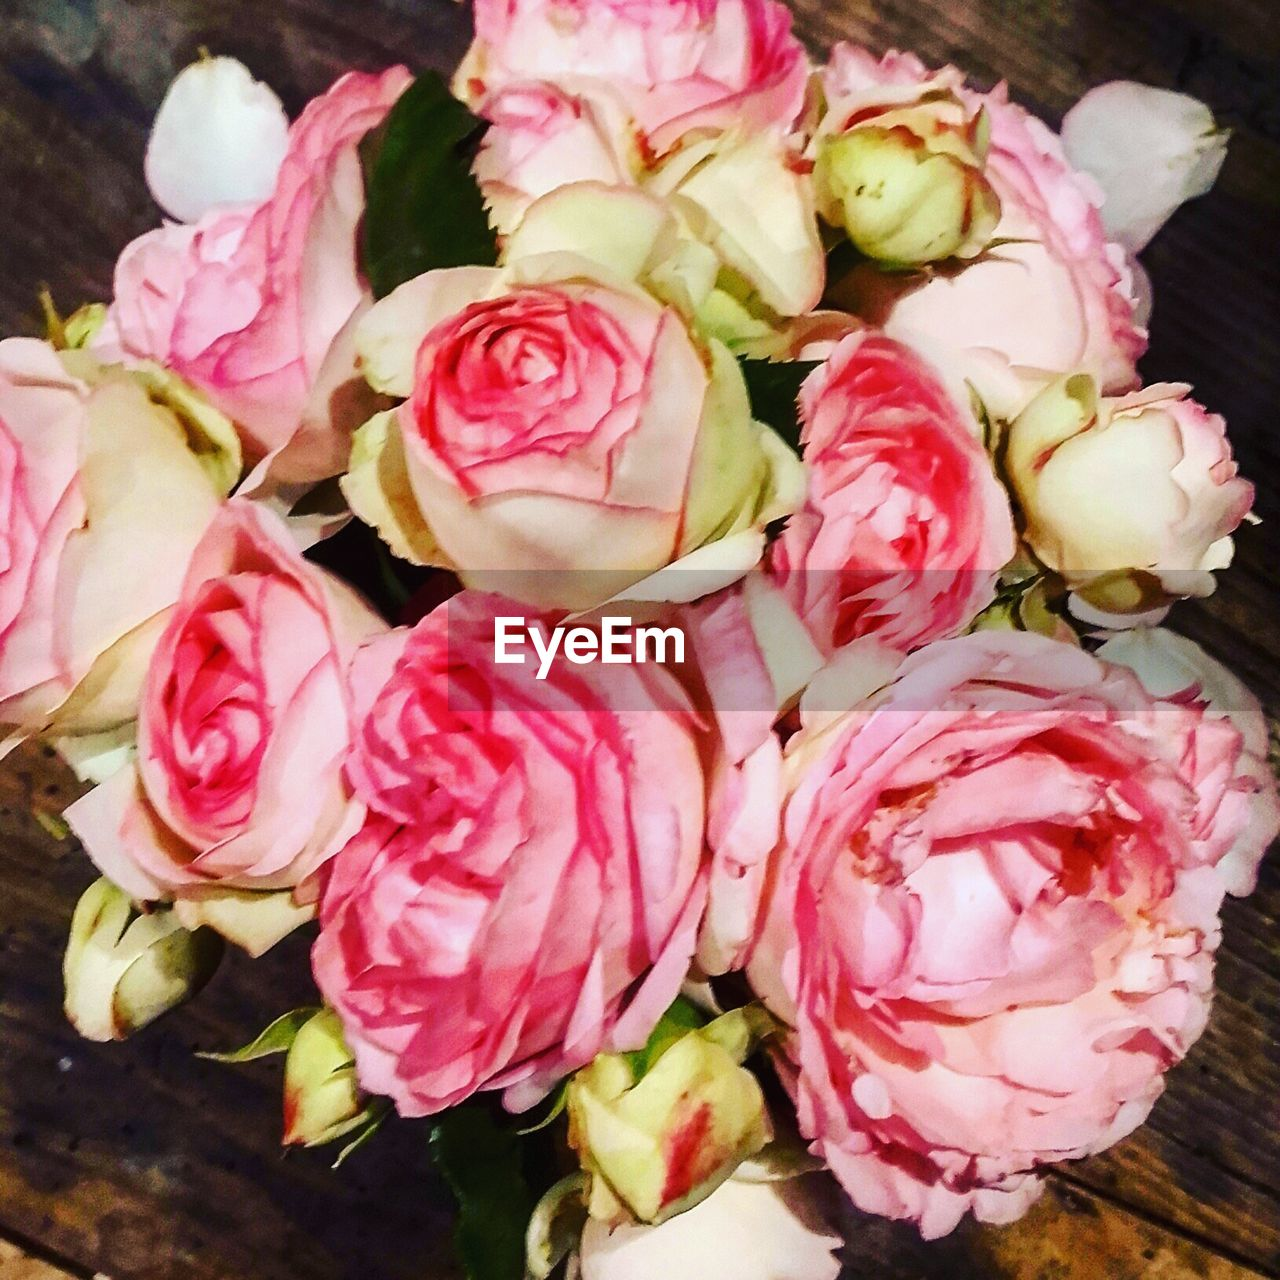 flower, rose - flower, petal, freshness, no people, fragility, close-up, pink color, flower head, nature, beauty in nature, day, bouquet, outdoors